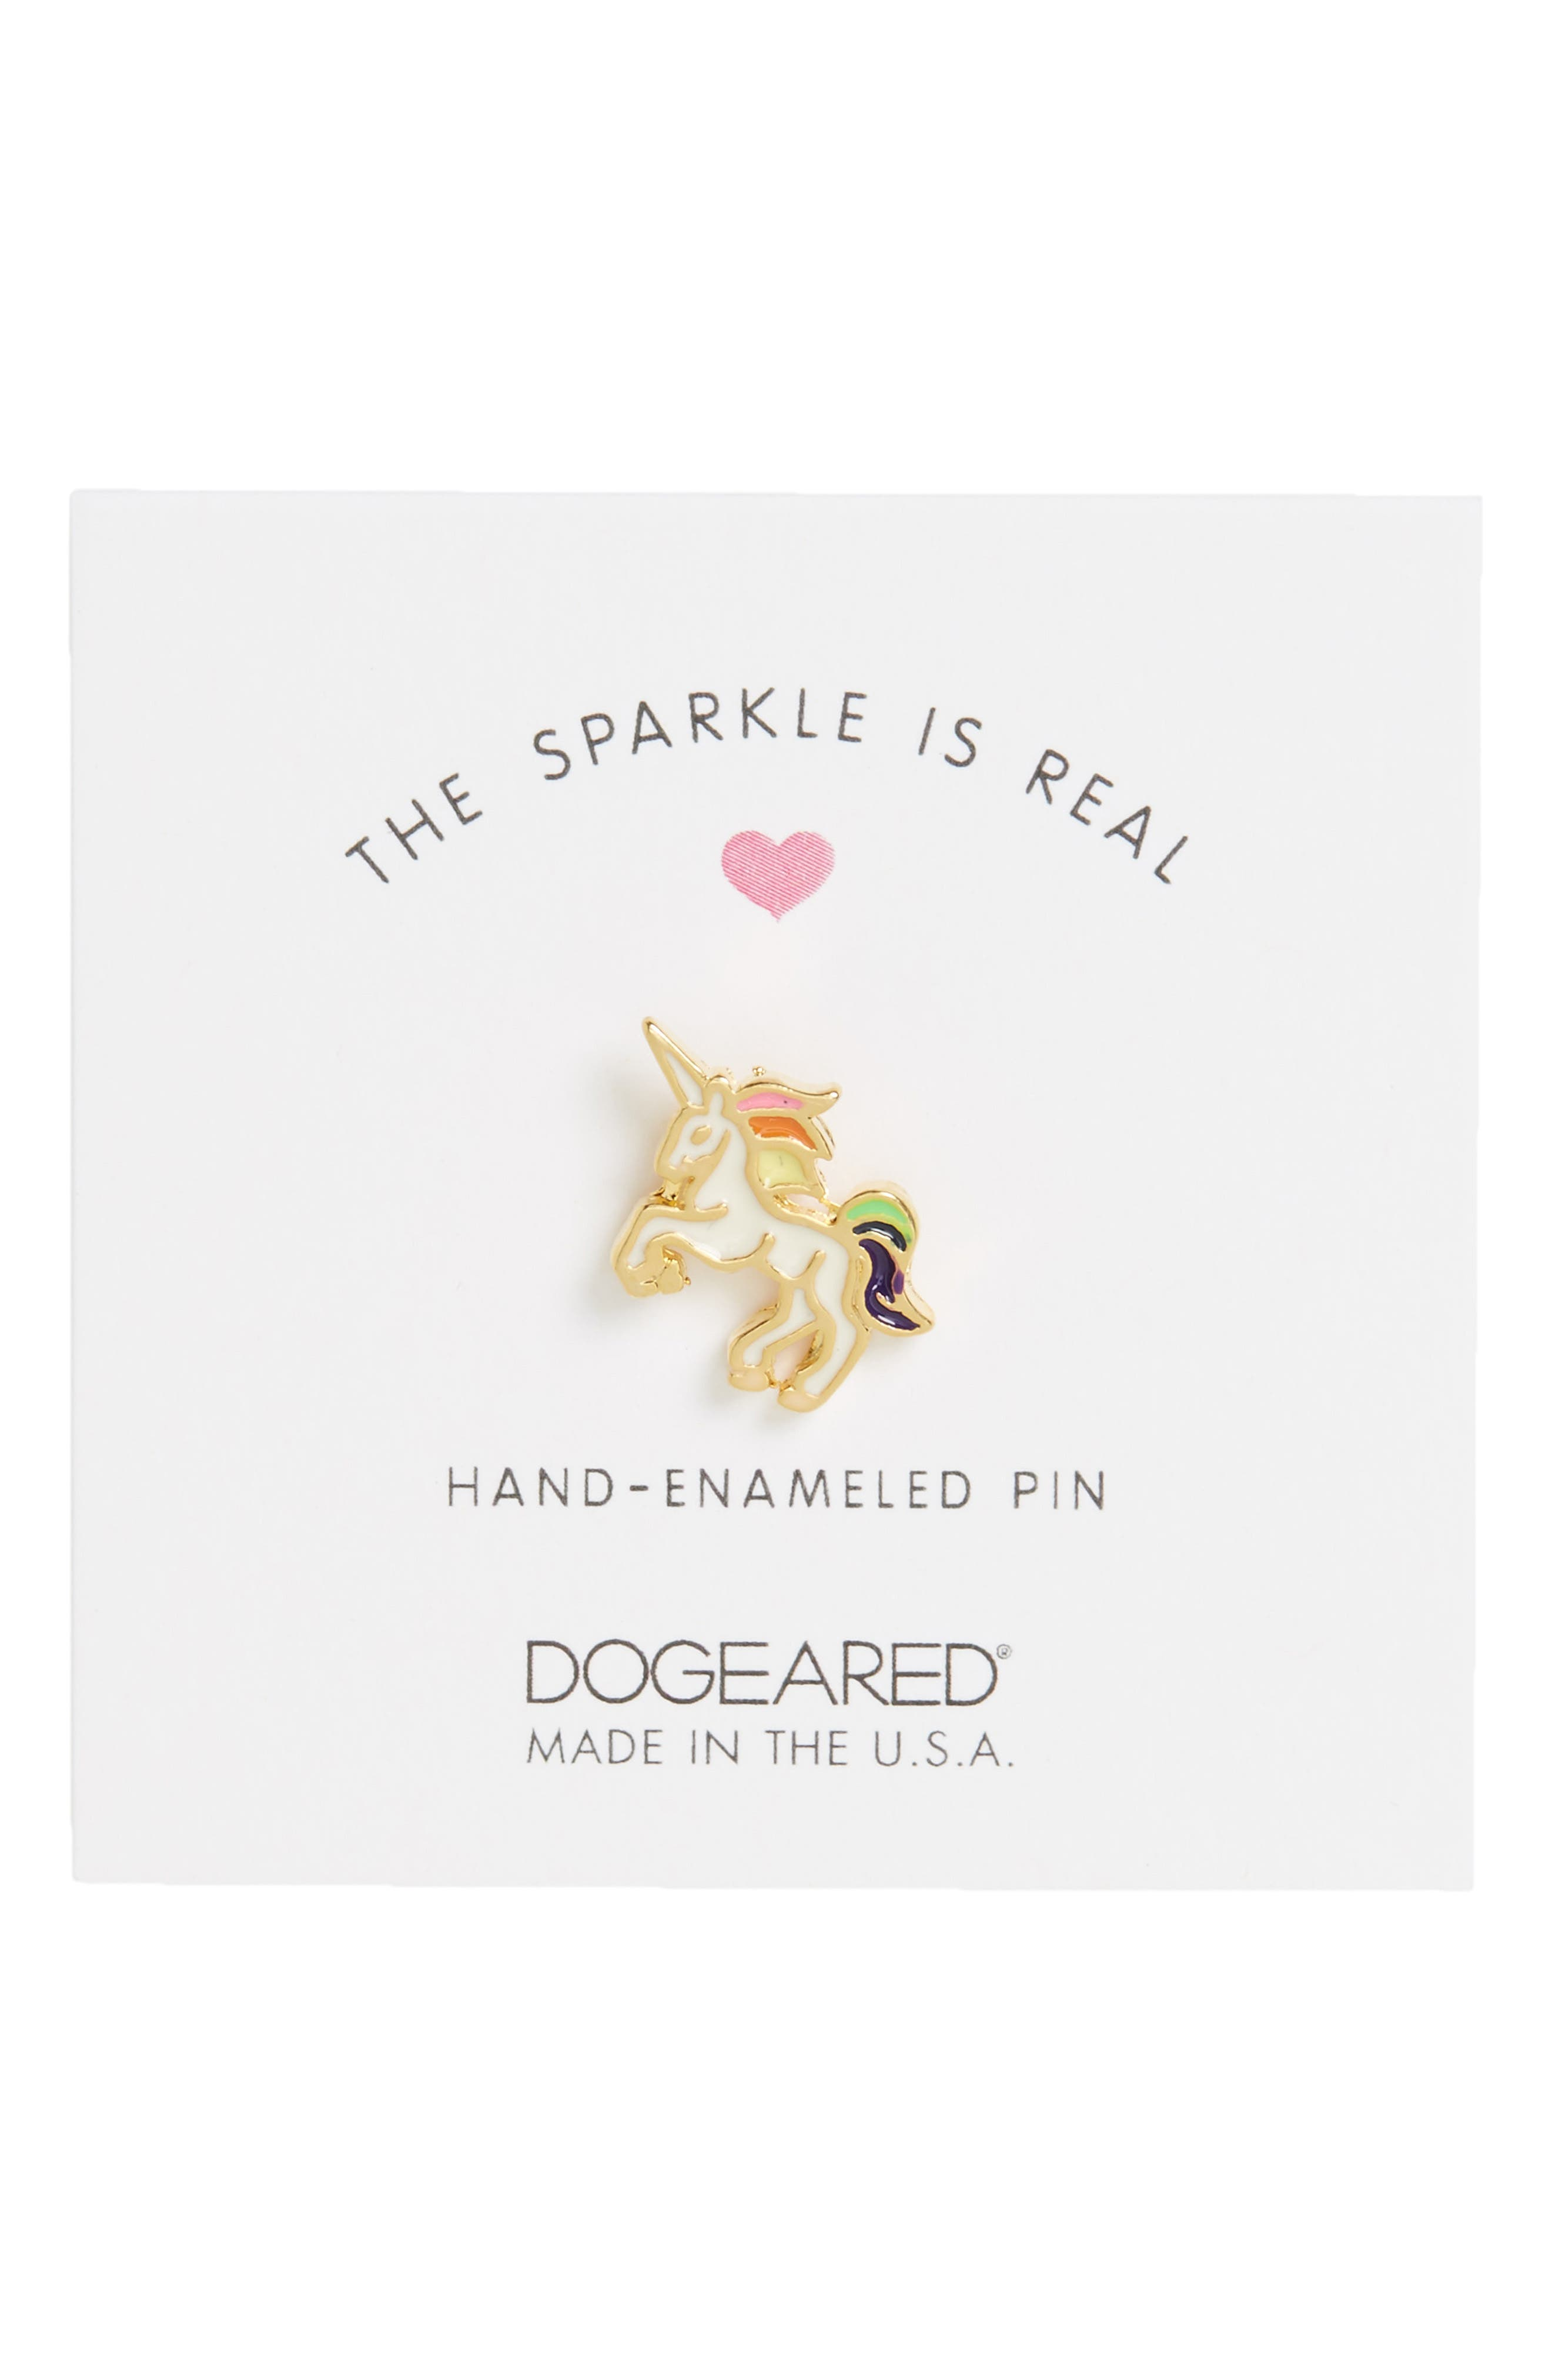 Alternate Image 1 Selected - Dogeared The Sparkle Is Real Pin